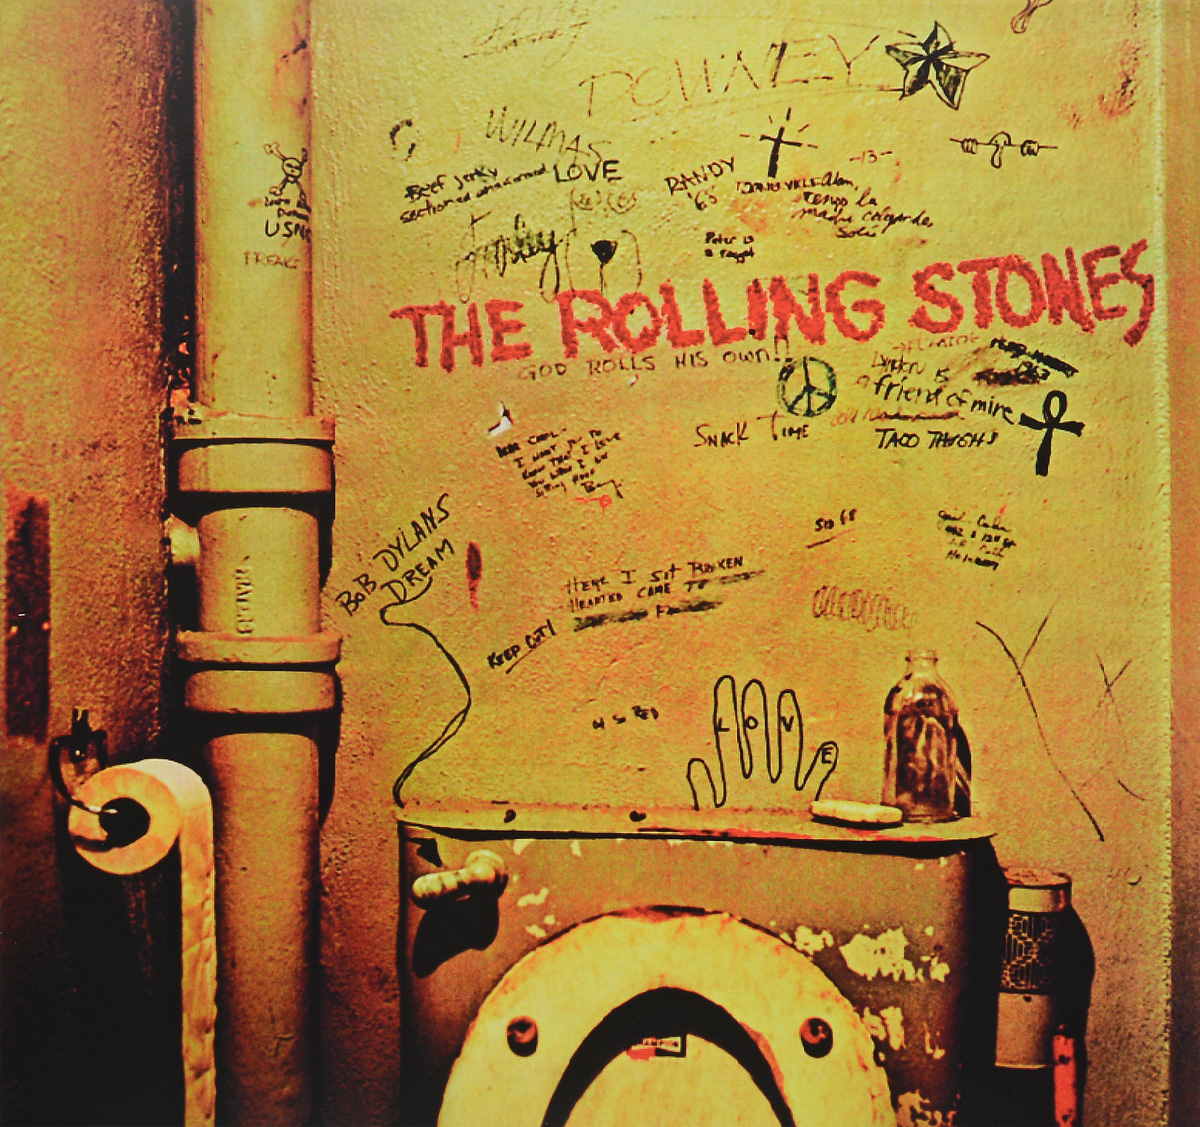 The Rolling Stones The Rolling Stones. Beggars Banquet (LP) the rolling stones – big hits high tide and green grass lp